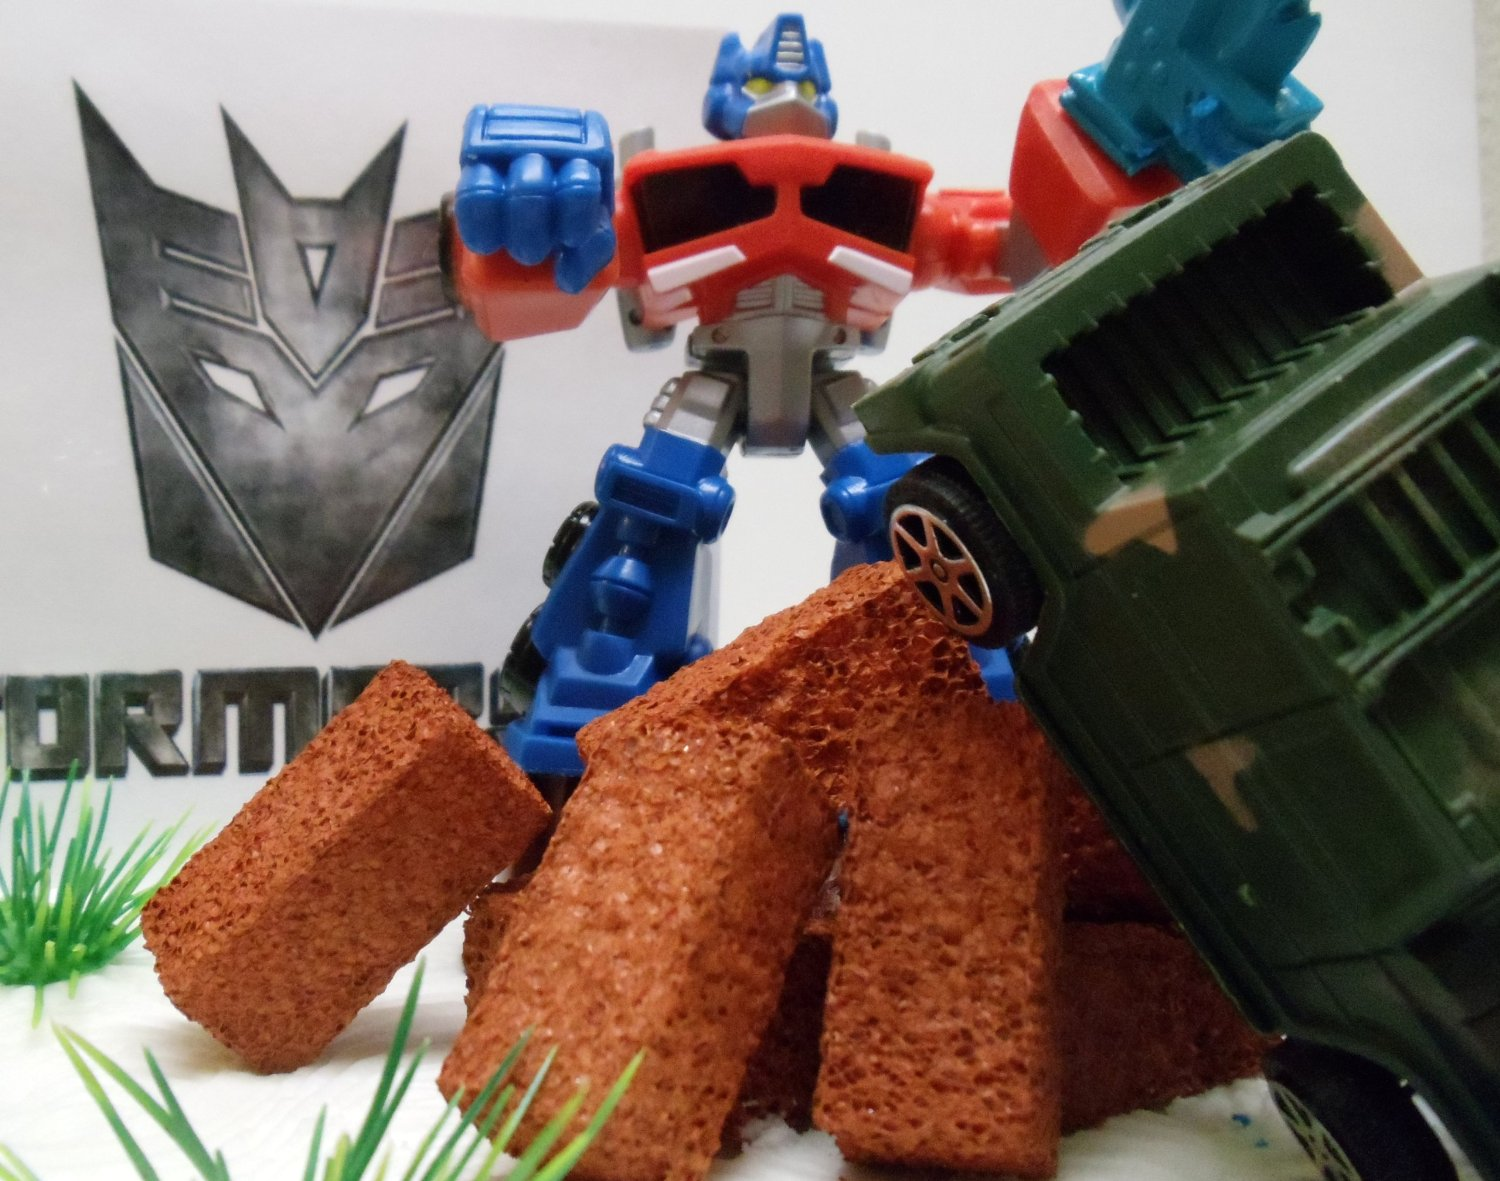 TRANSFORMERS 10 PIECE BIRTHDAY CAKE TOPPER SET FEATURING BUMBLEBEE AND OPTIMUS PRIME FIGURES WITH THEMED DECORATIVE N2